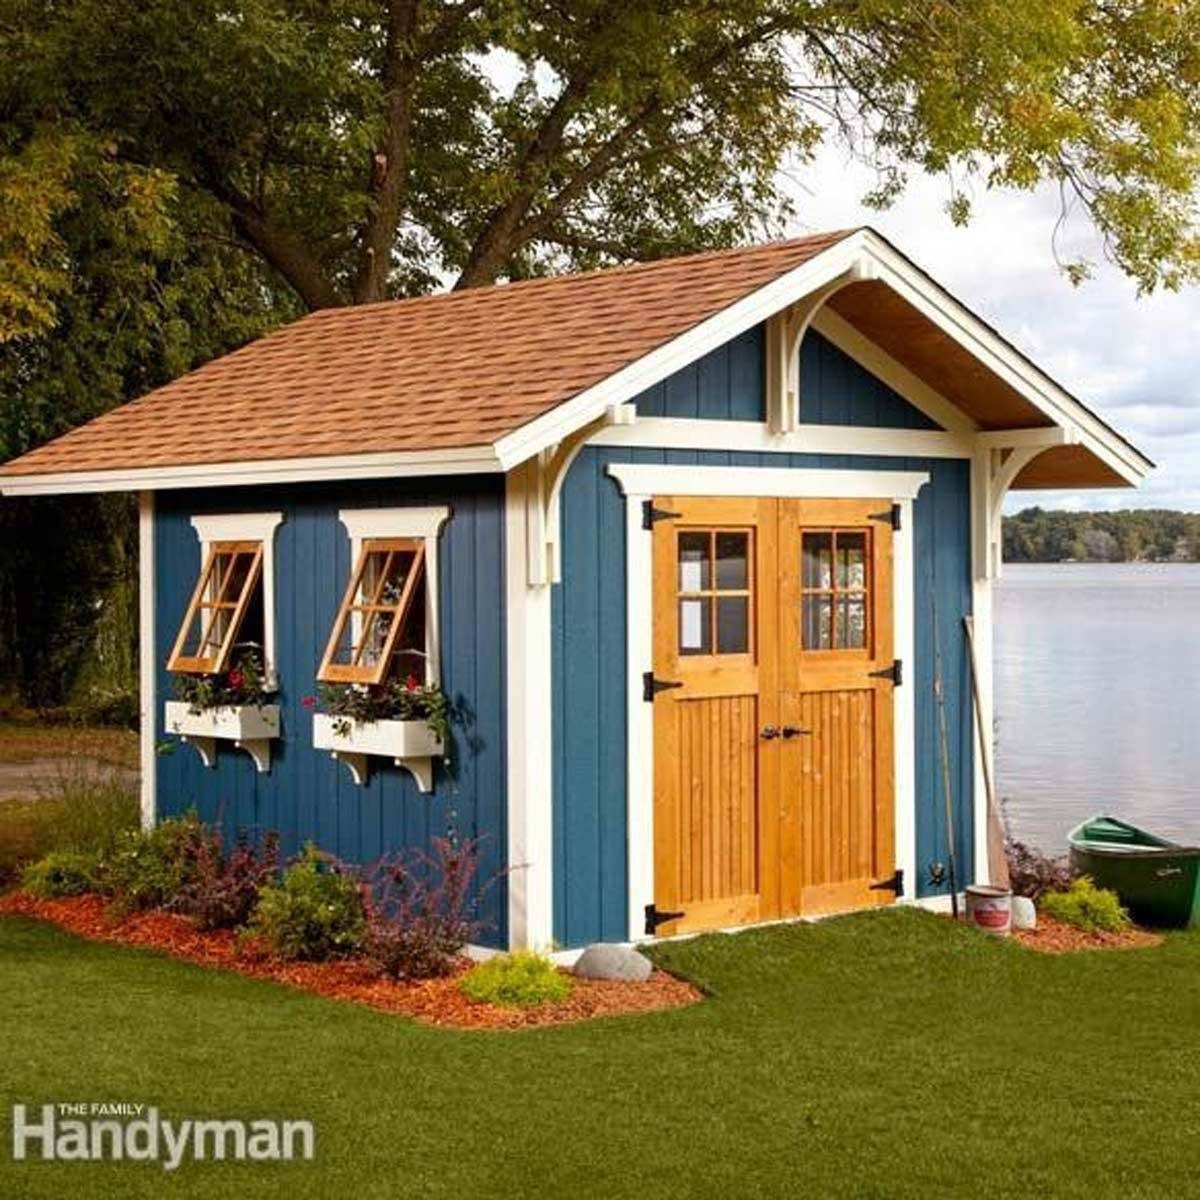 24 tips for turning a shed into a tiny hideaway the family handyman